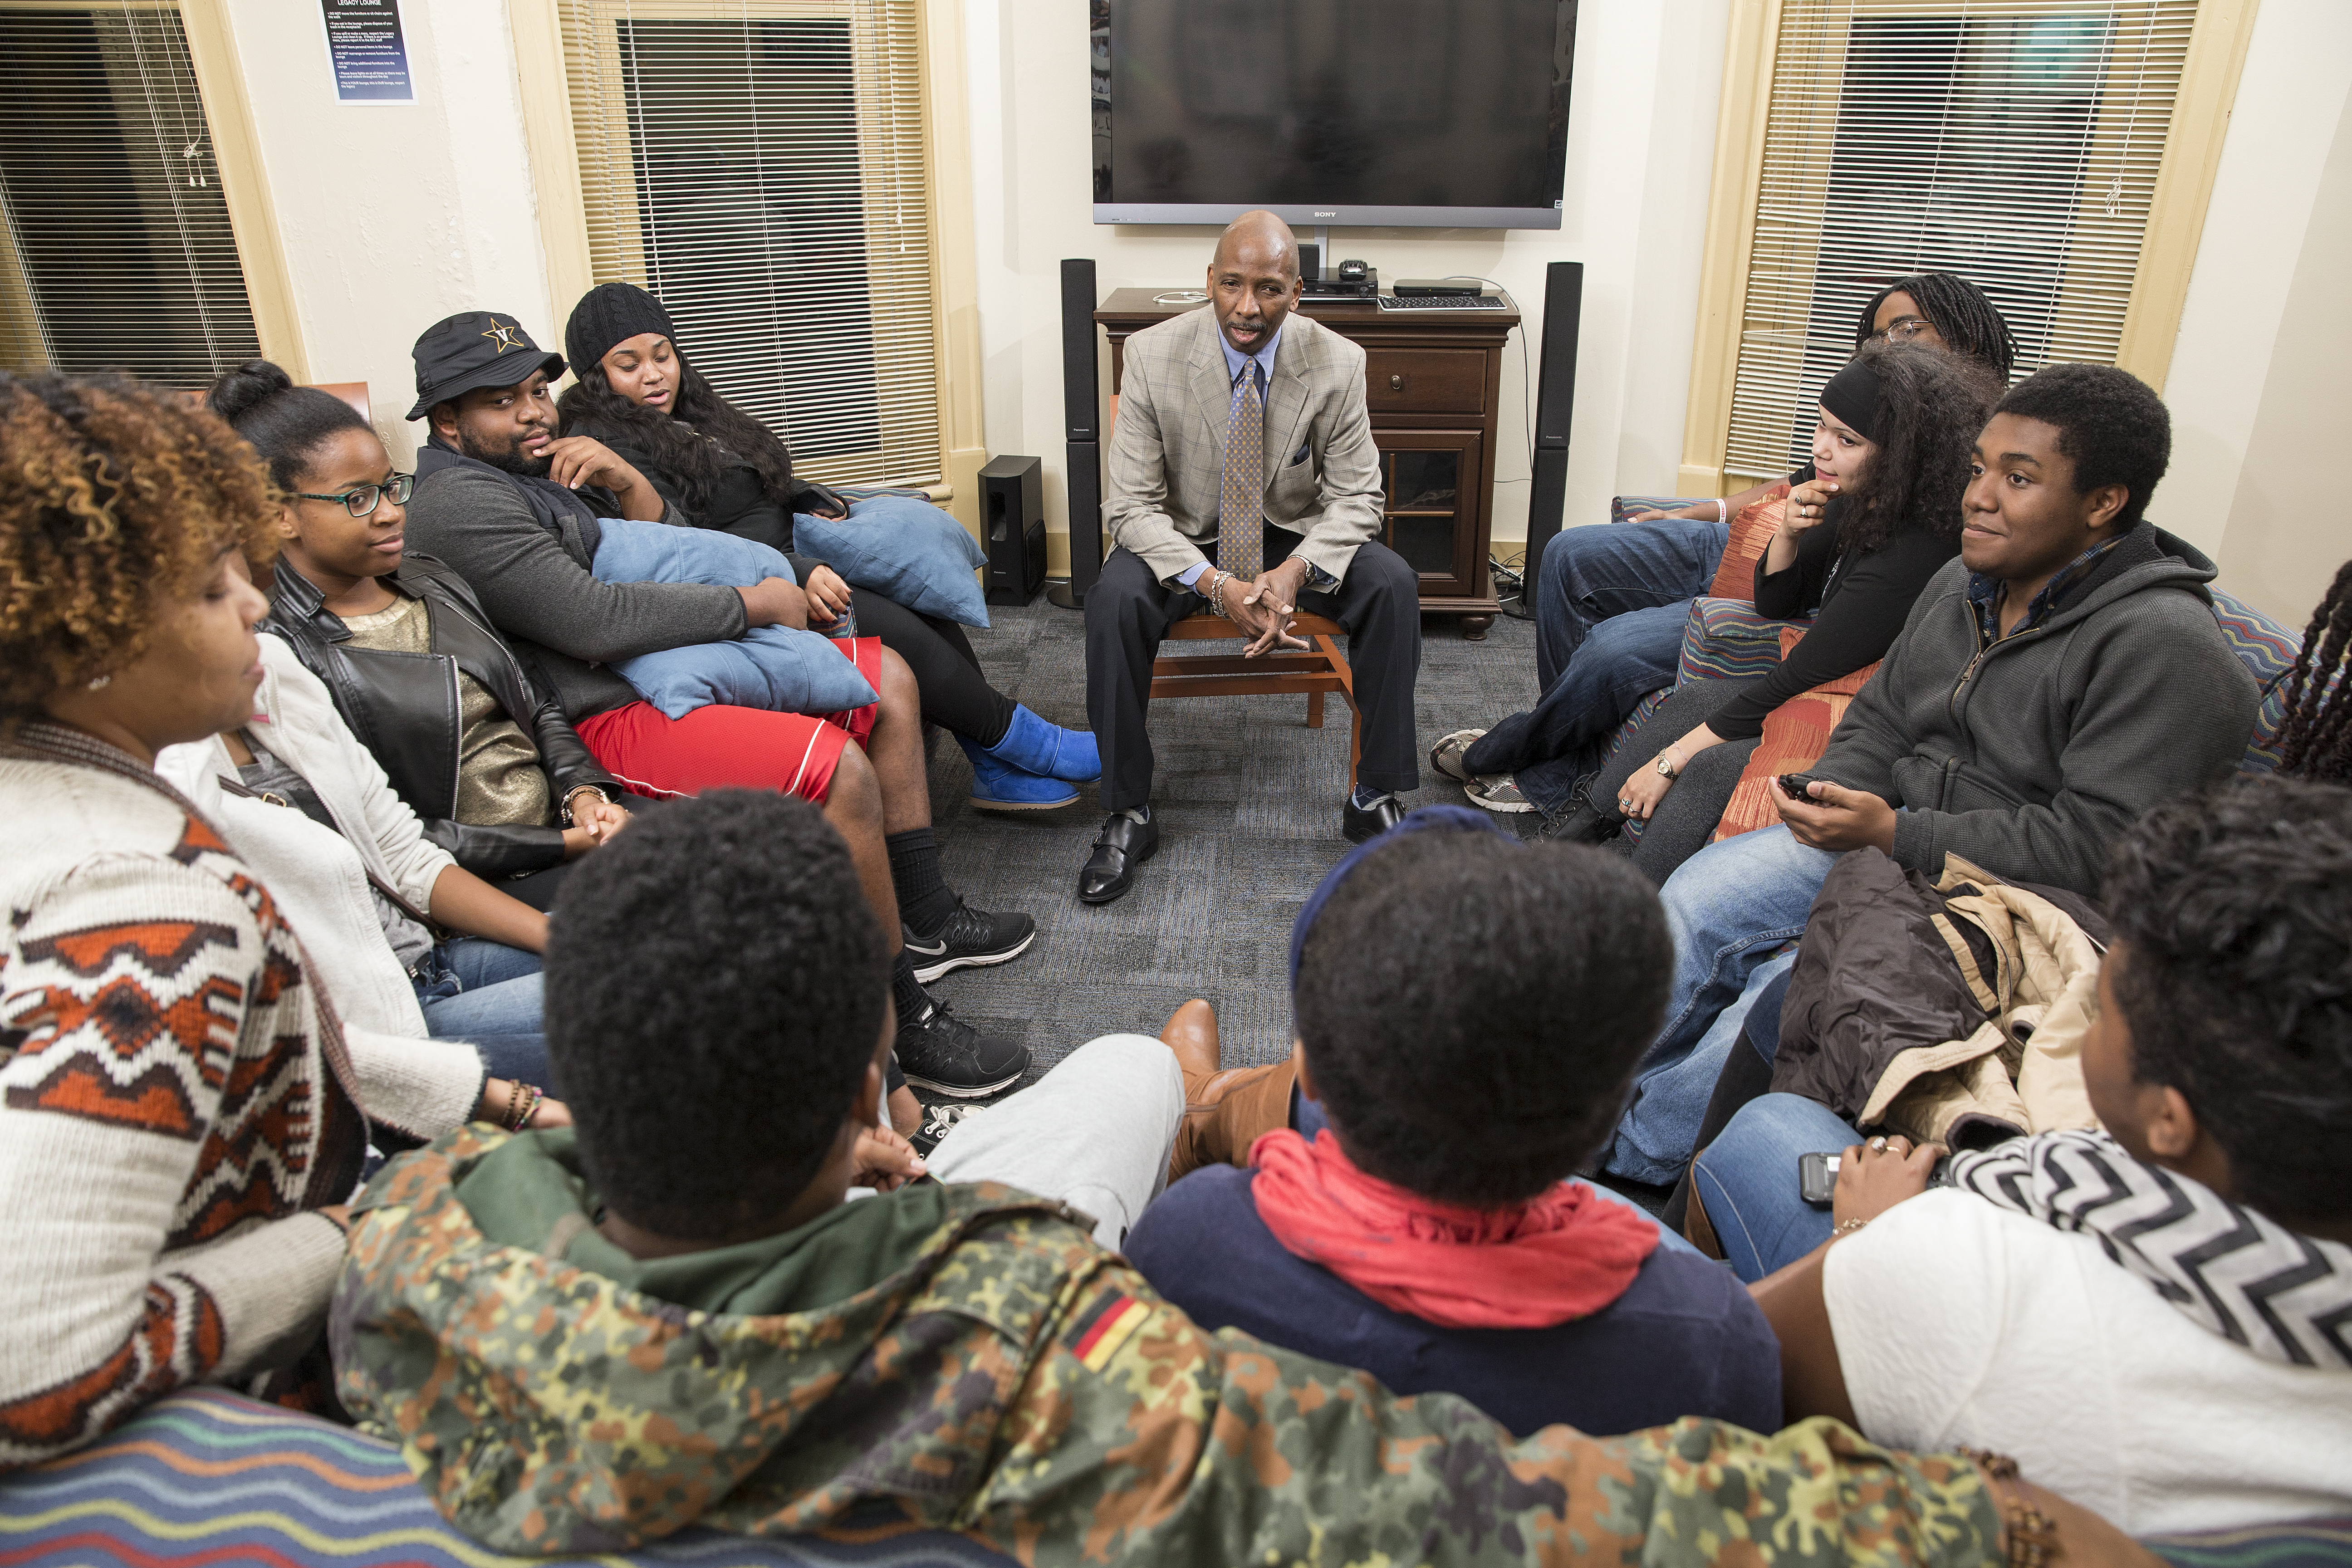 Associate Dean Frank Dobson hosts a discussion for students.